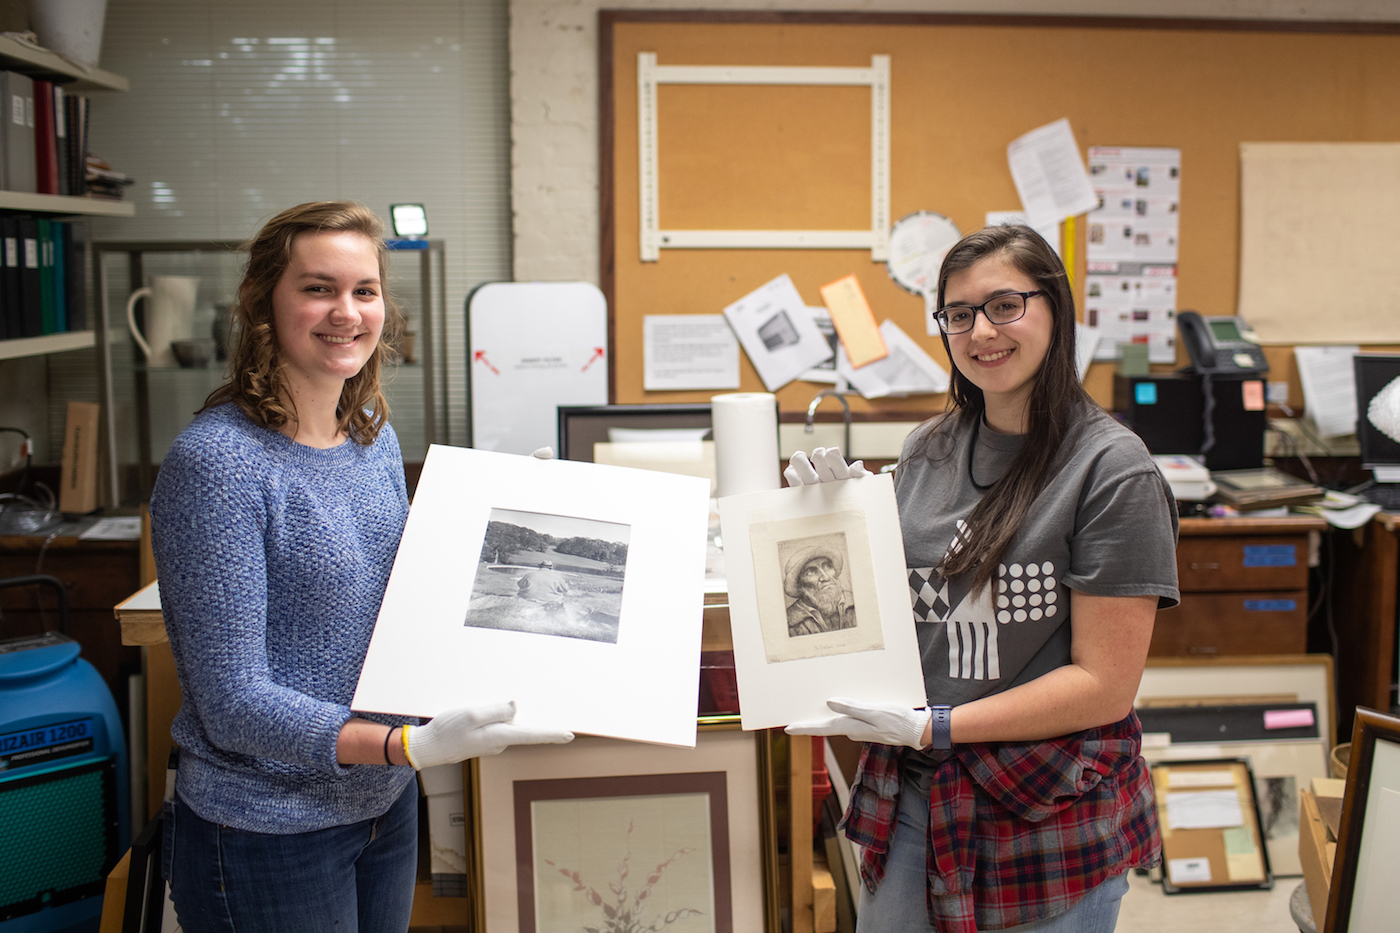 Art students Sarah Potter and Katherine Tolleson hold their discoveries. Potter is holding a Philippe Halsman photo print of Winston Churchill, and Tolleson is holding a drypoint by Alphonse Legros.